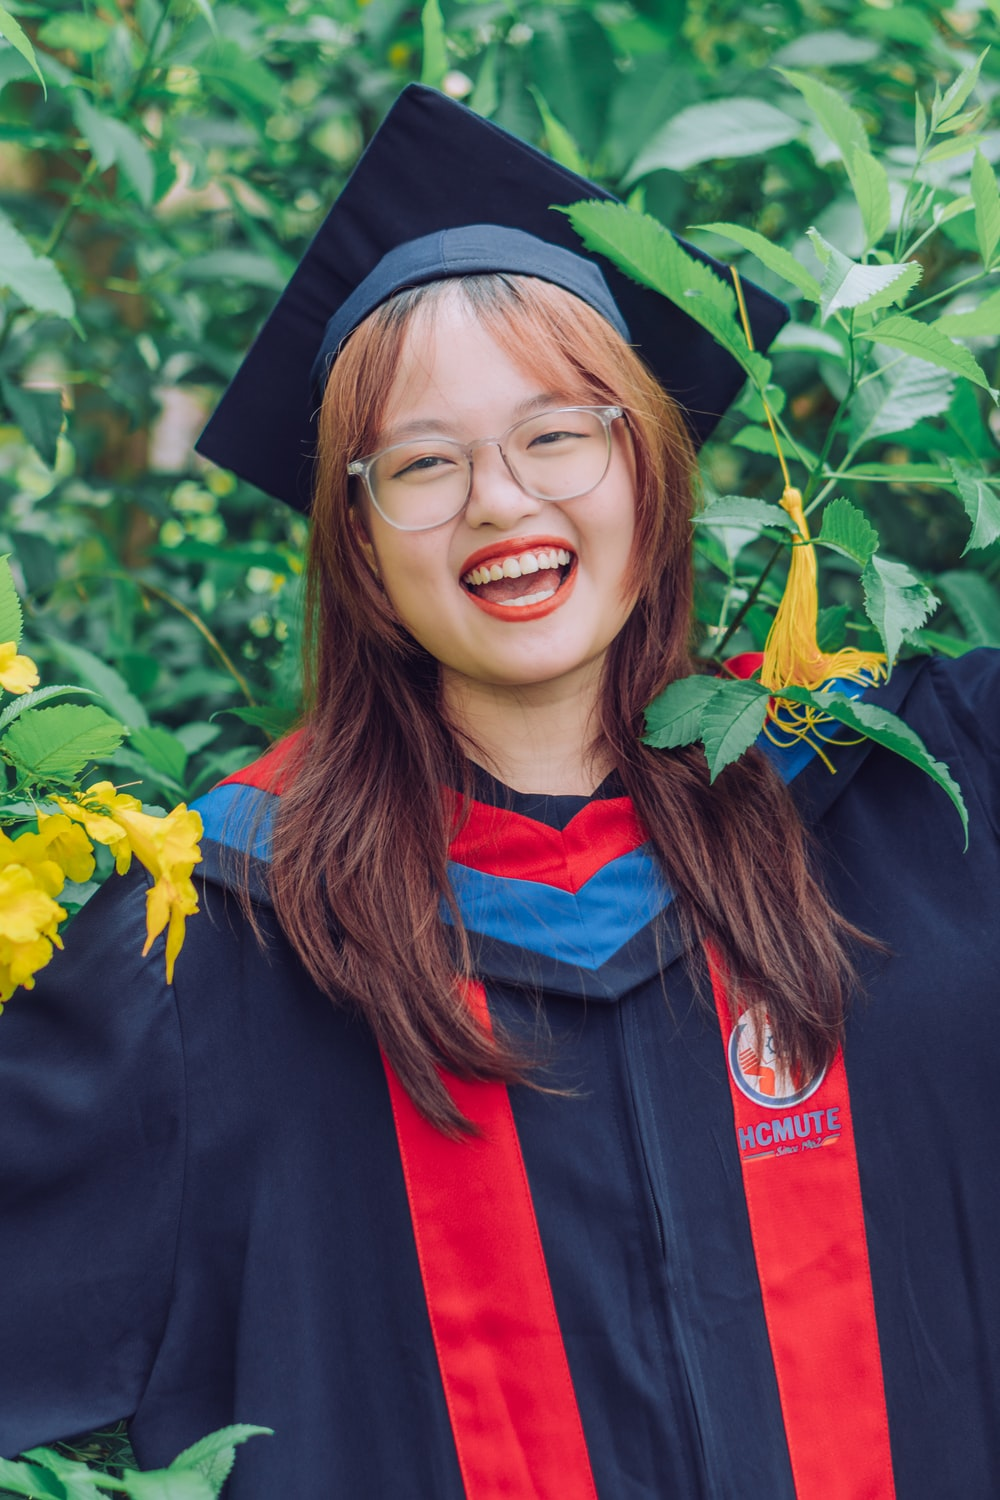 smiling woman in black academic dress and red scarf